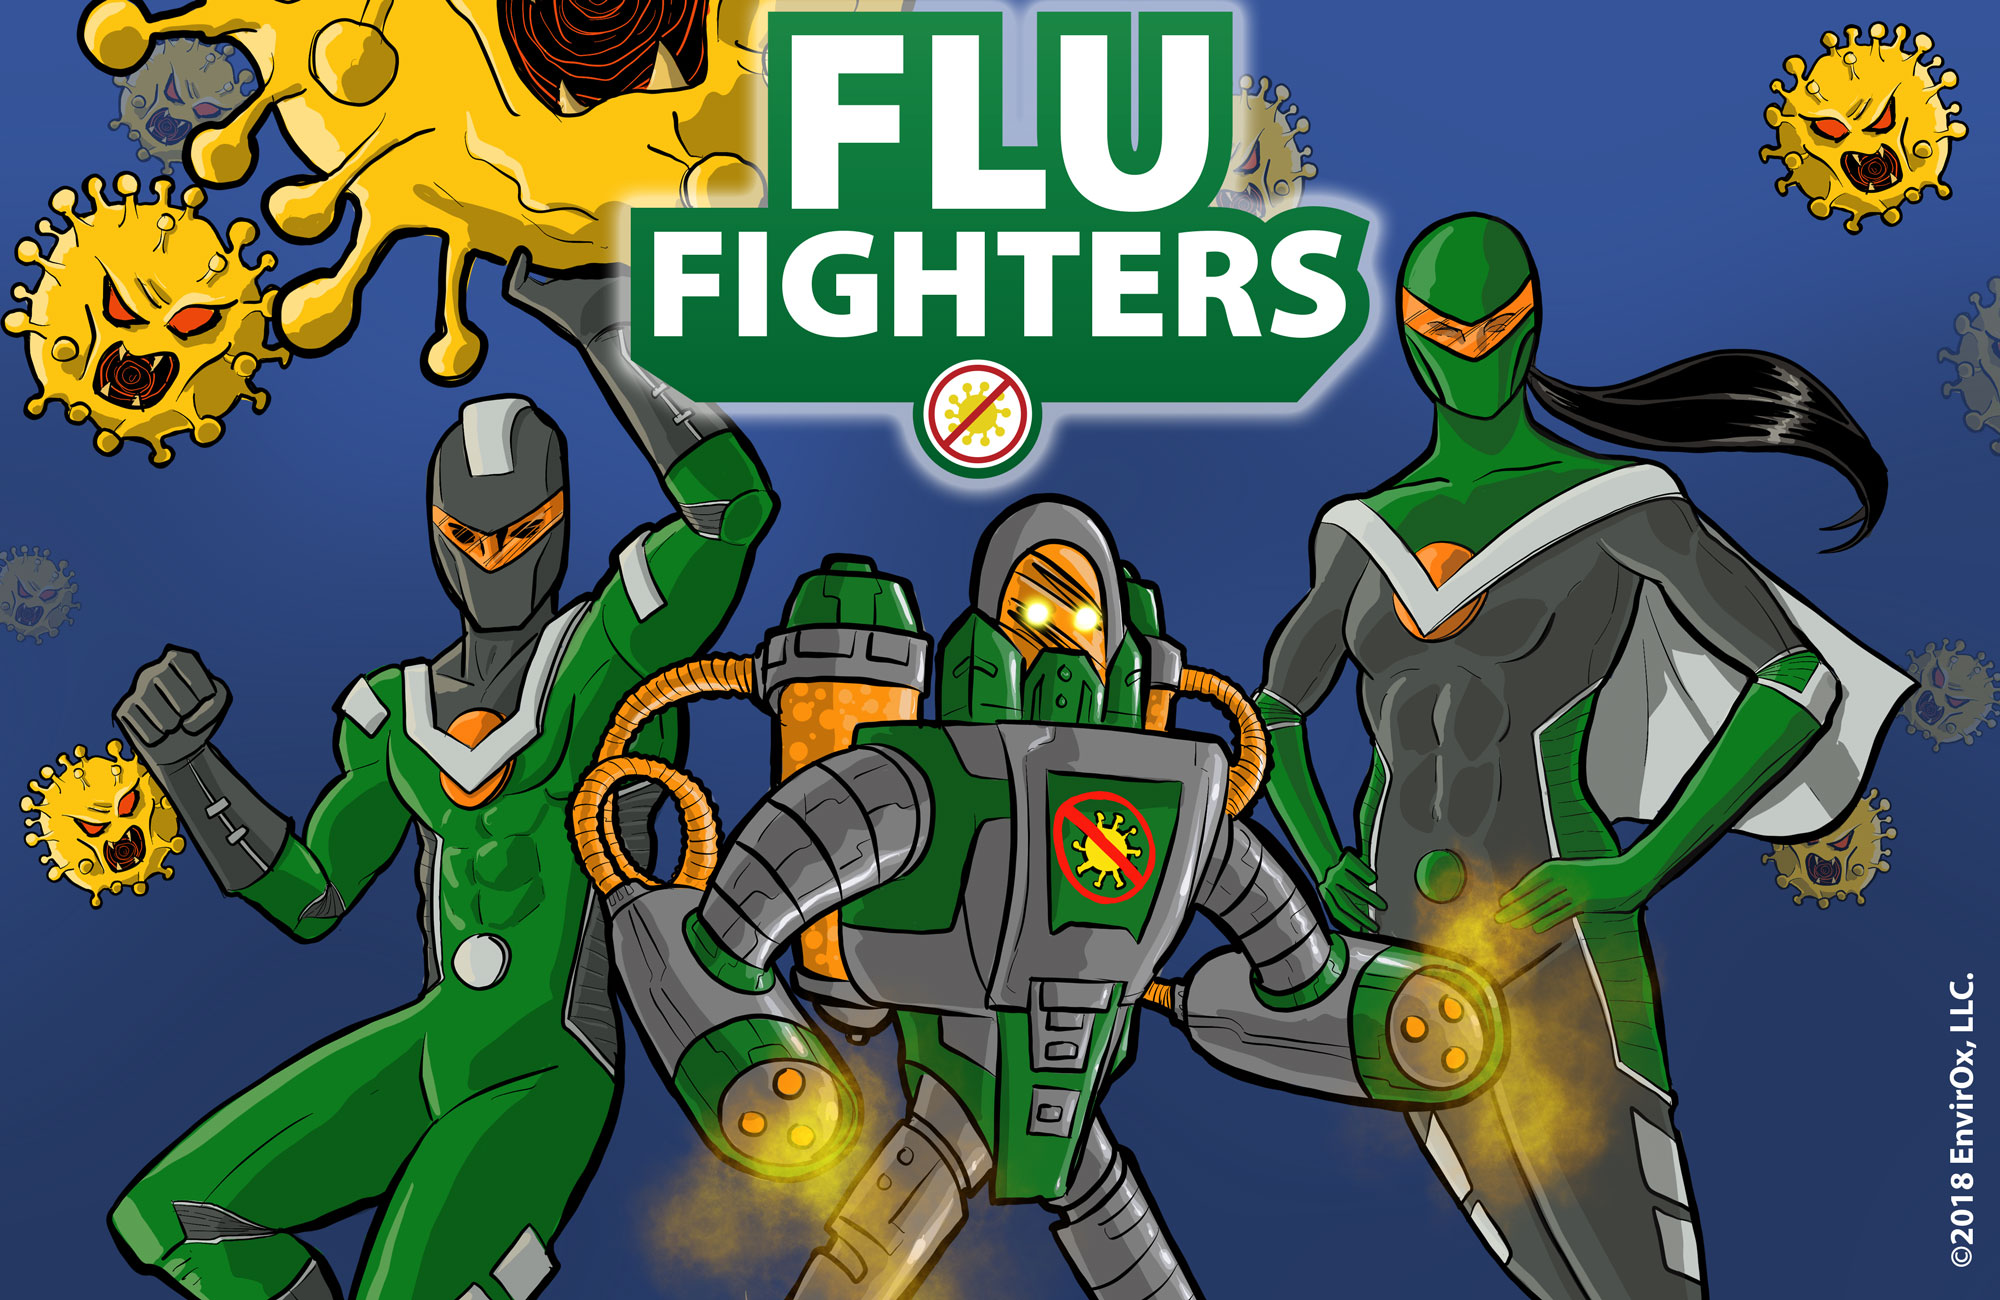 Flu Fighters: Protecting Schools Again An Unseen Menace